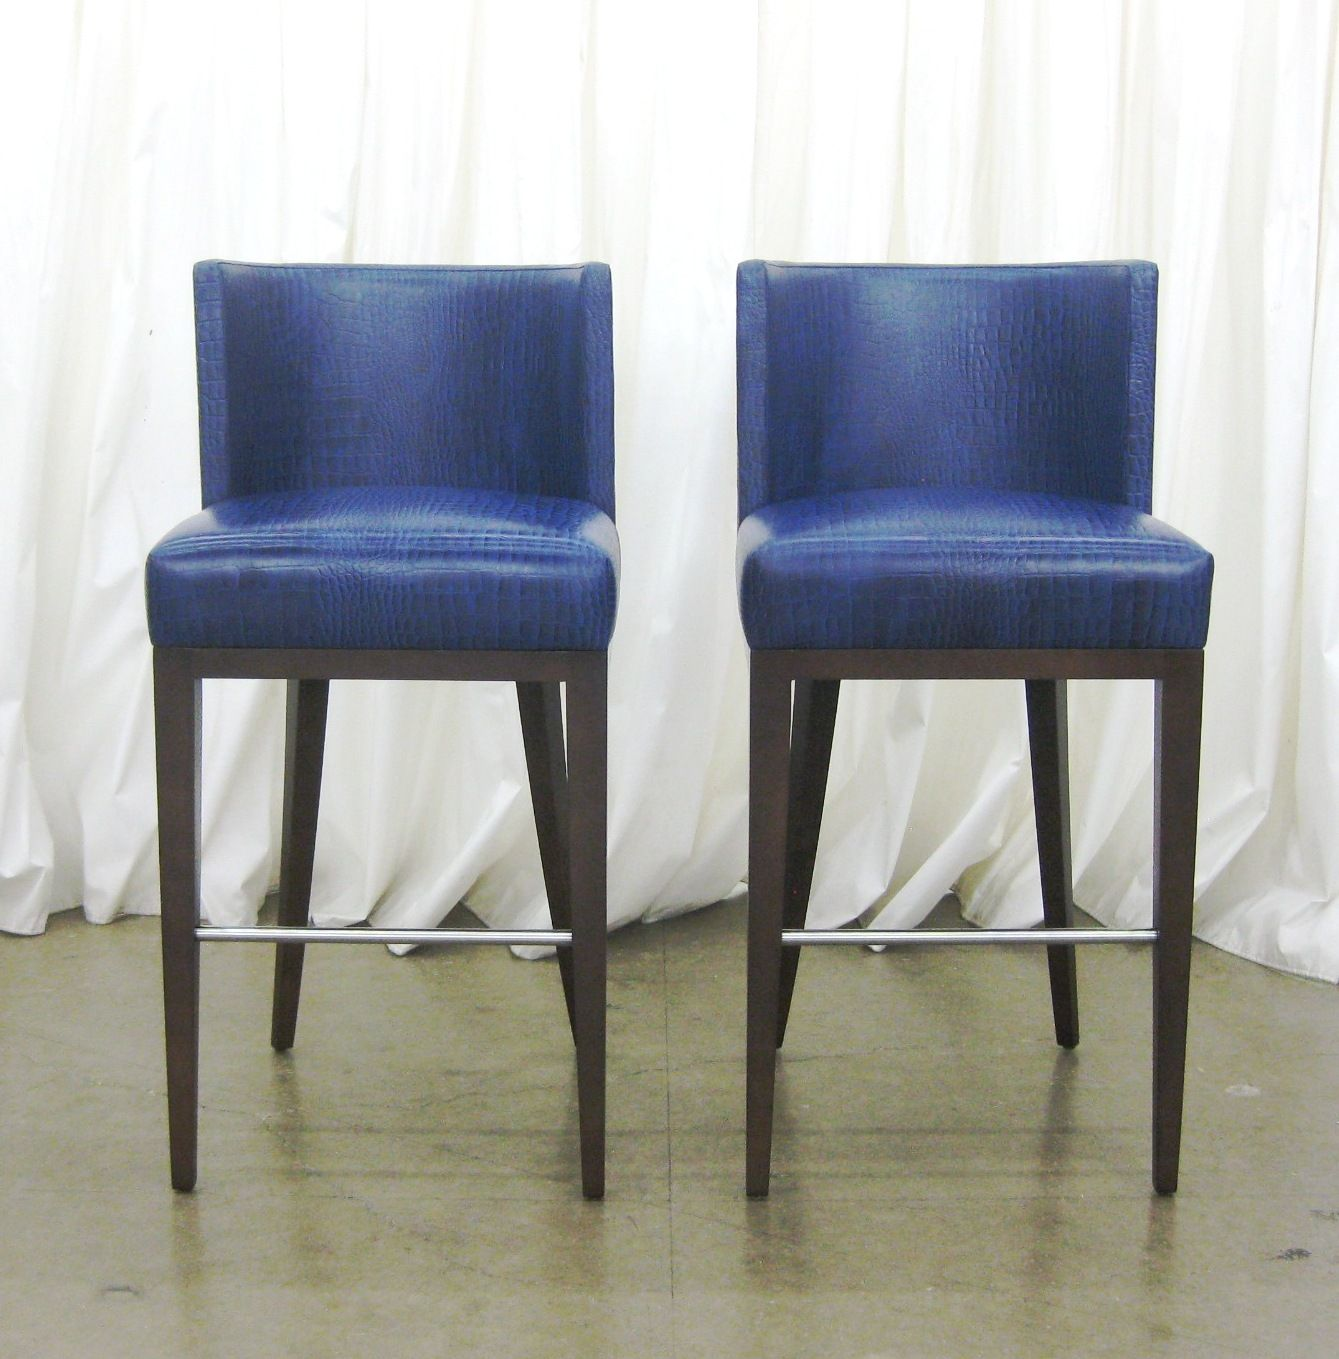 Arabesque Barstools In Blue Leather Bar Stools Home Decor Decor